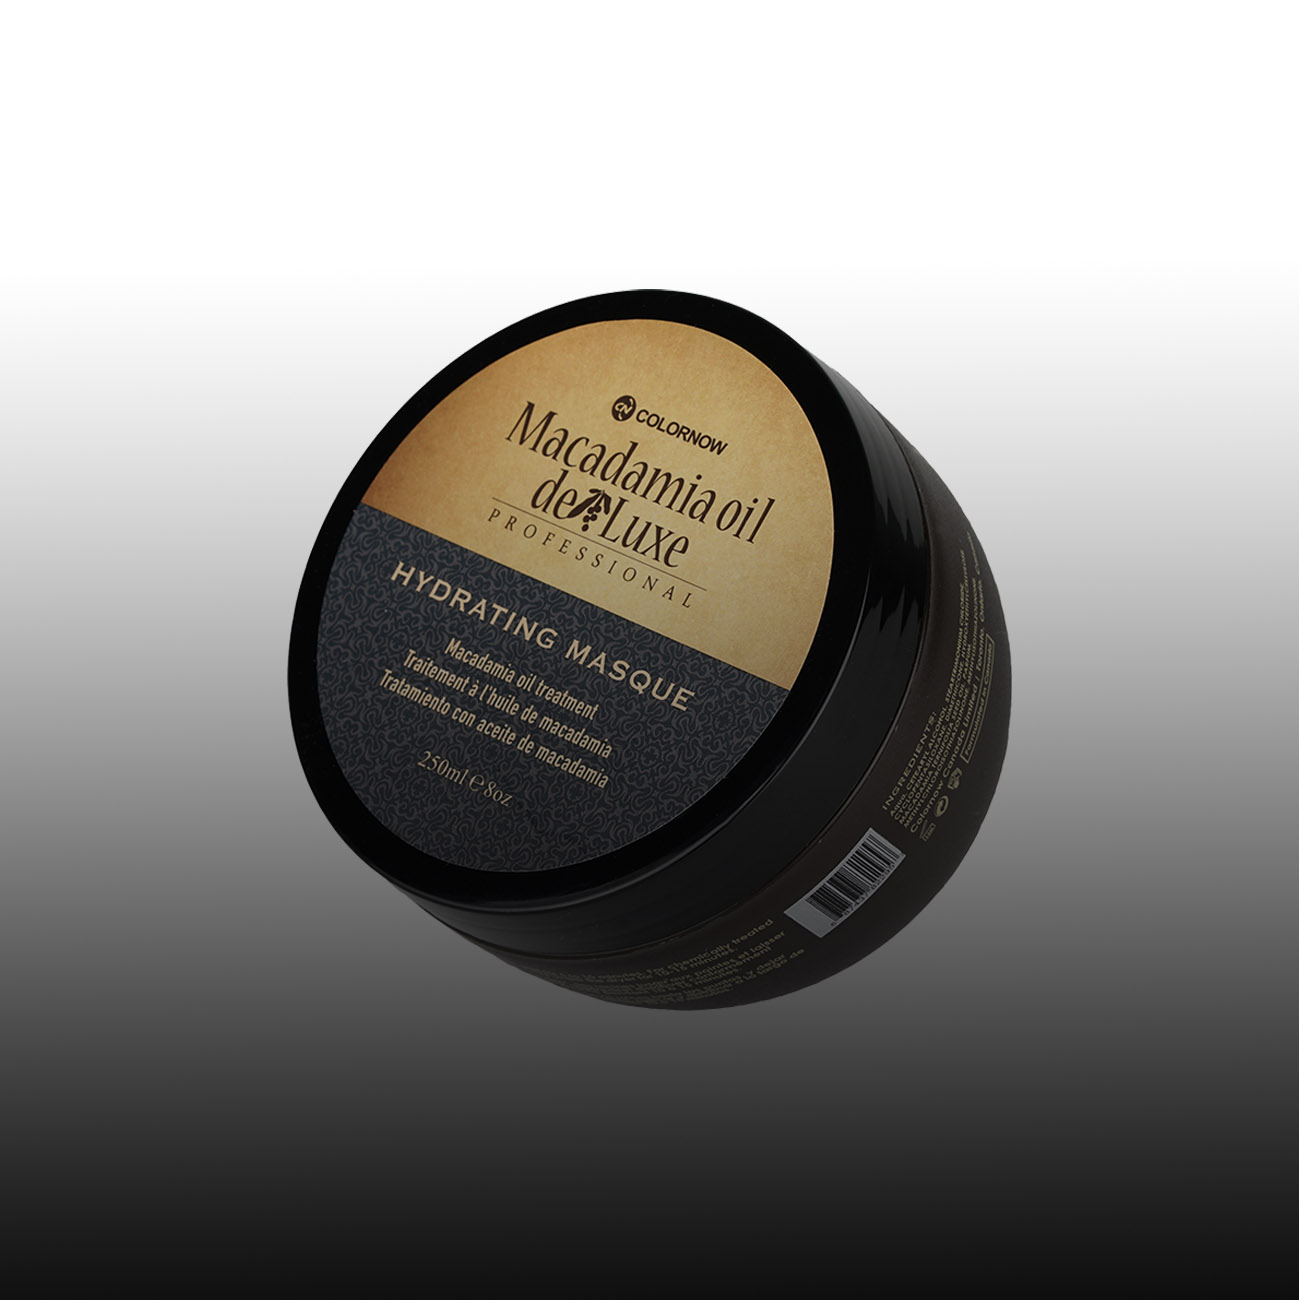 Macadamia Oil Hydrating Masque